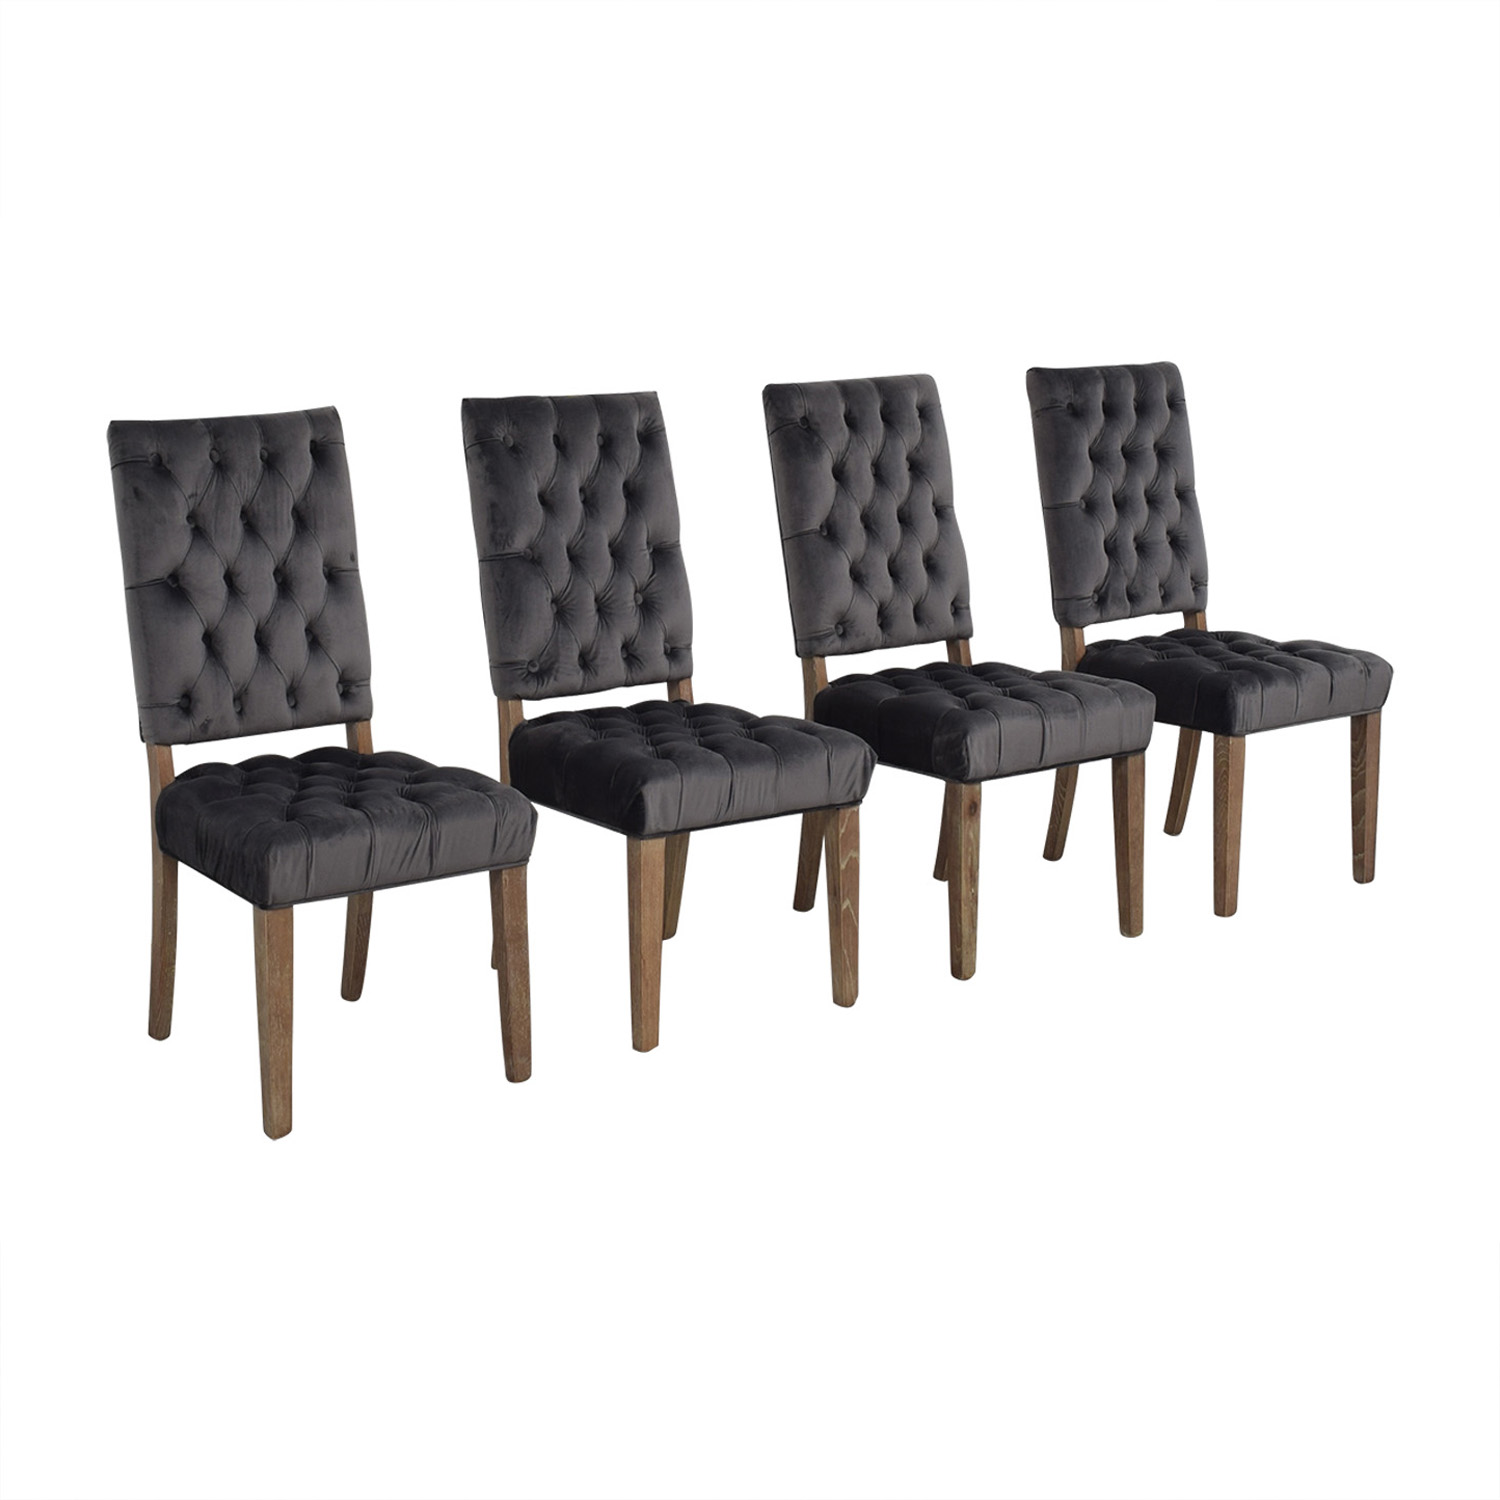 Classic Concepts Onyx Tufted Dining Chairs Classic Concepts